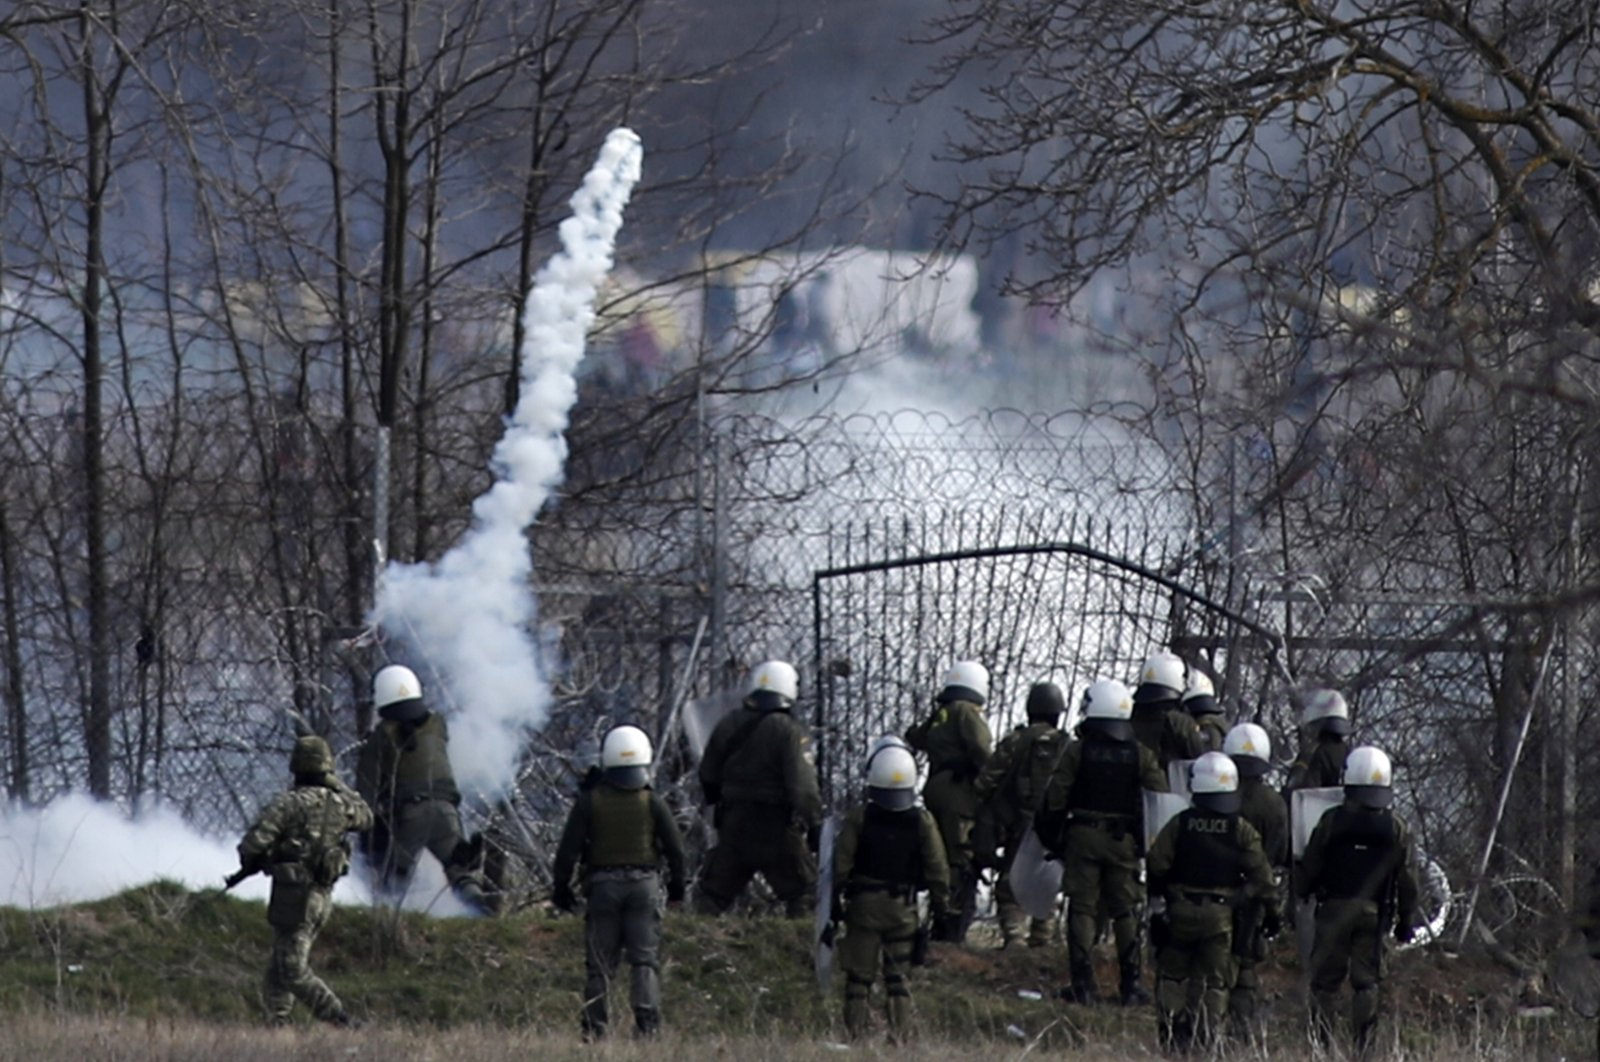 Greek police stand guard as migrants gather at a border fence on the Turkish side during clashes at the Greek-Turkish border in the town of Kastanies, the Evros region, March 7, 2020. (AP Photo)